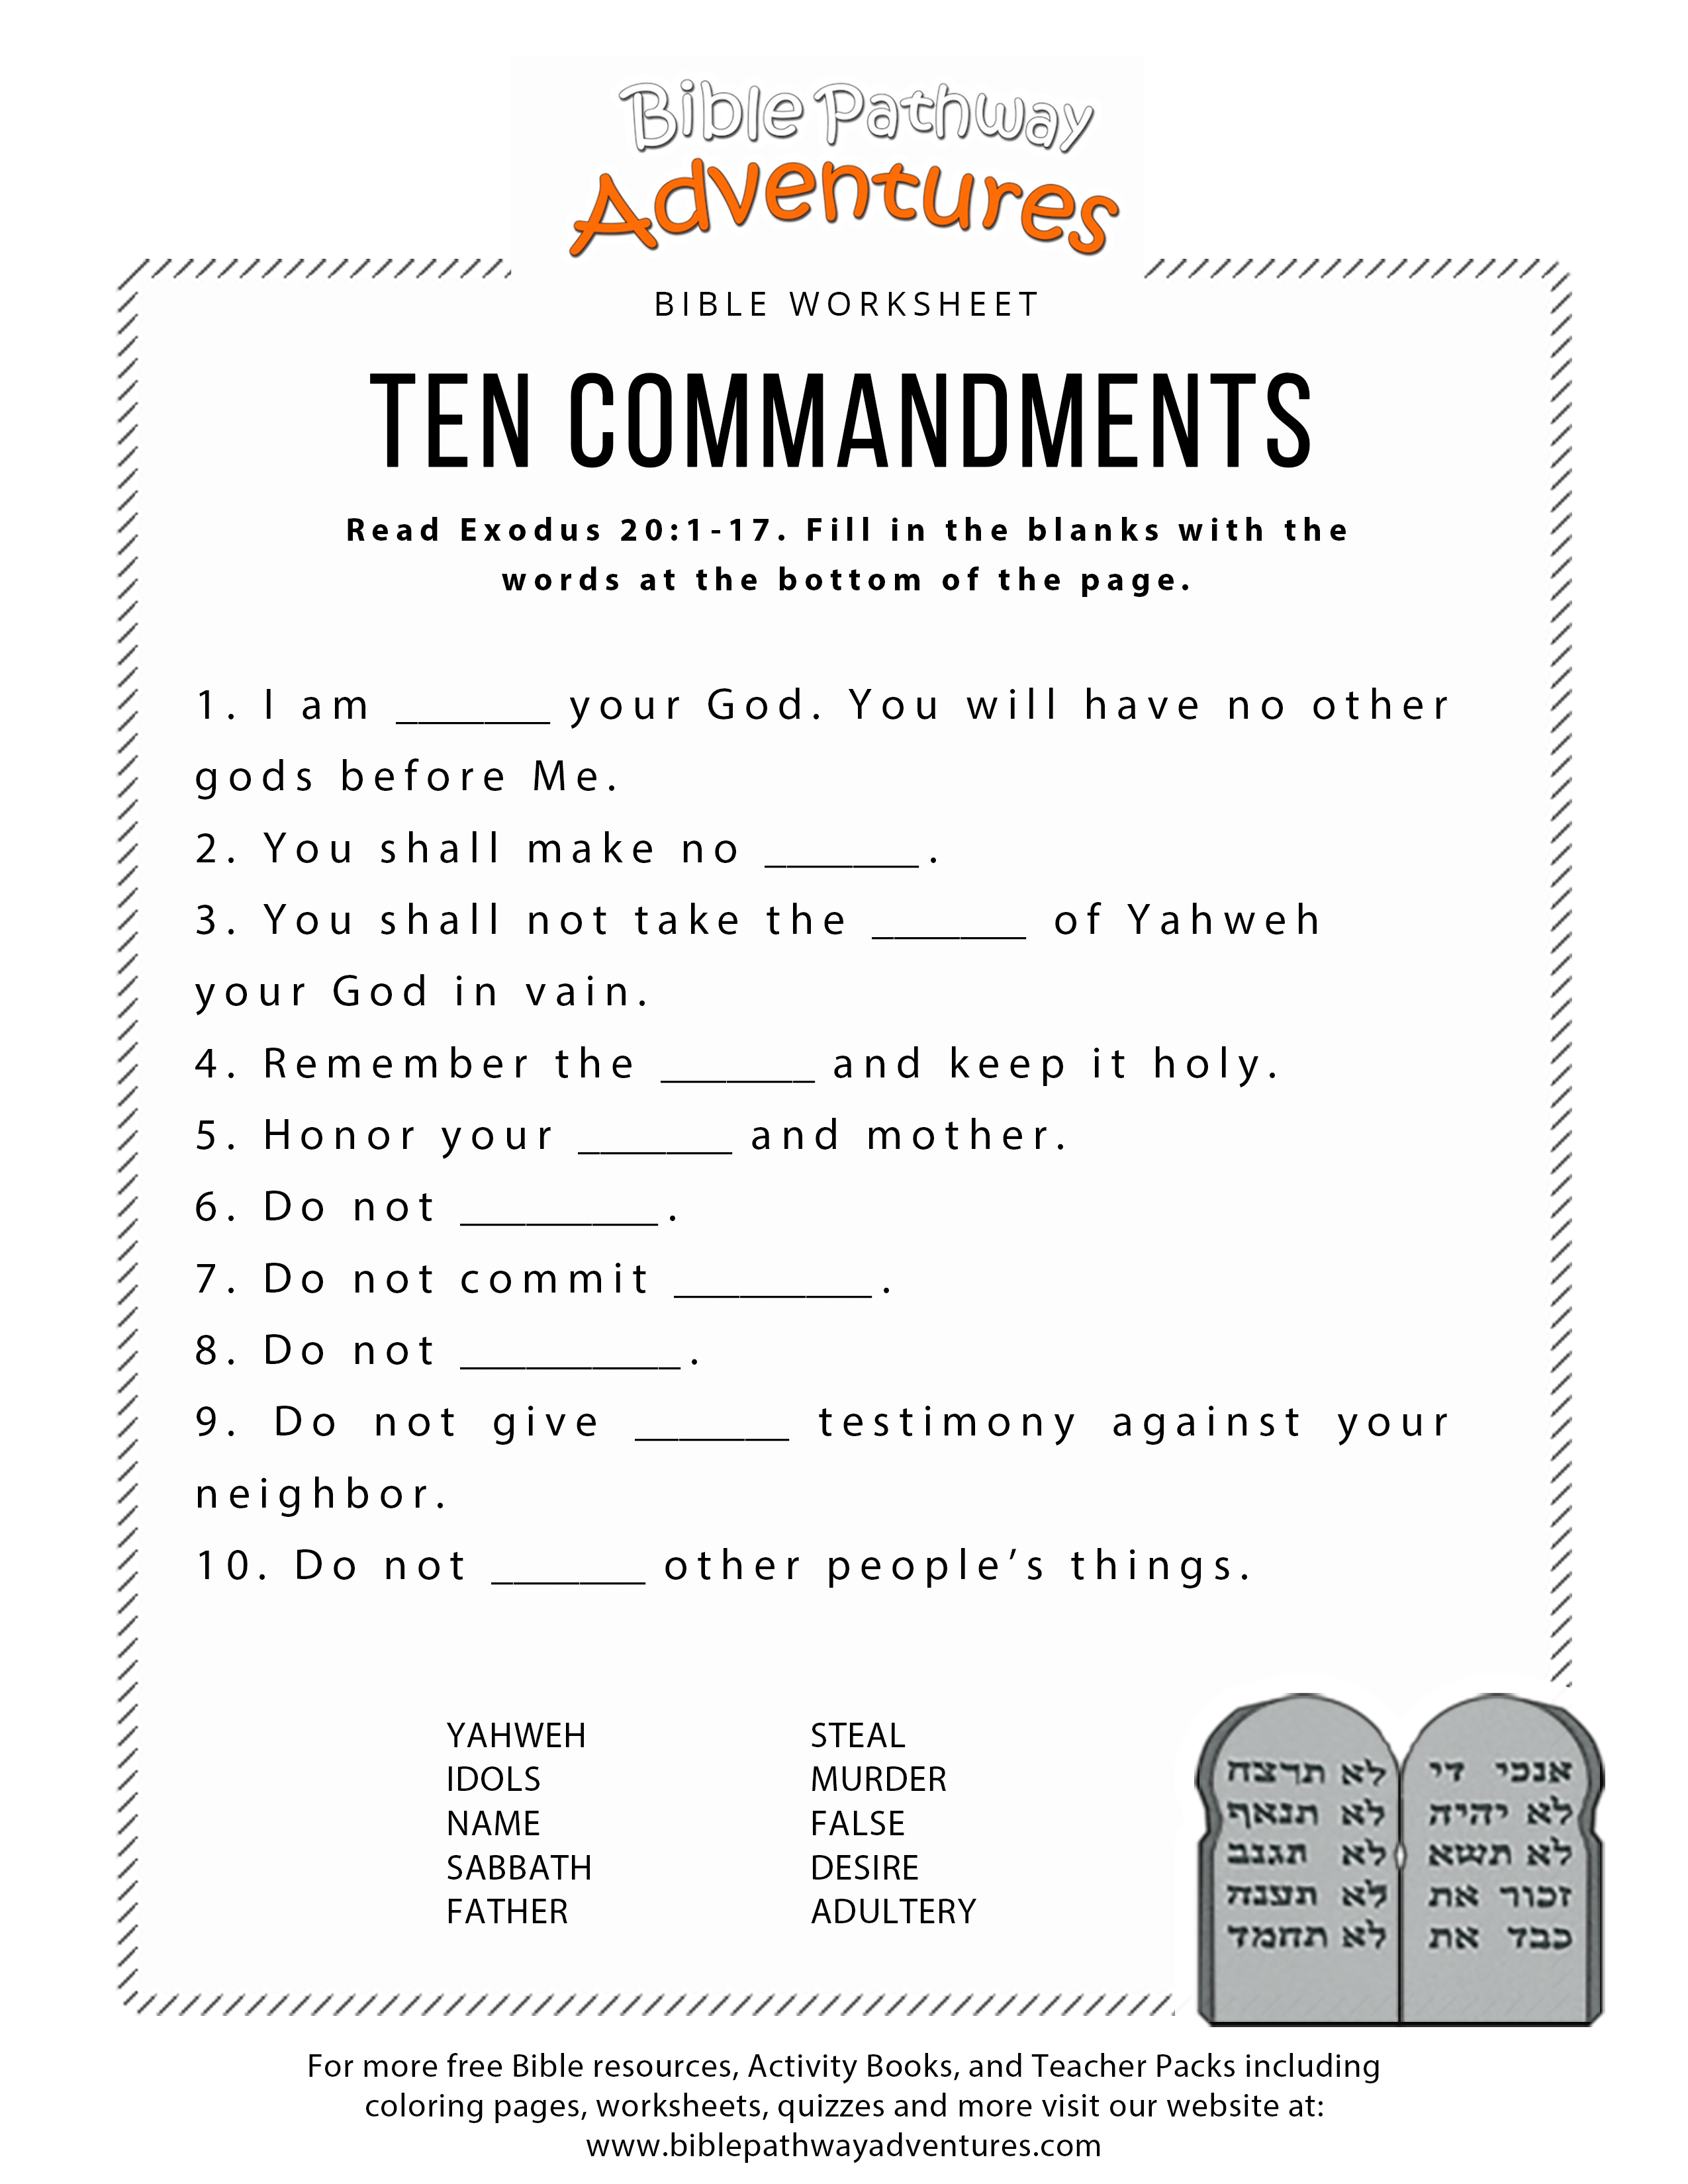 Ten Commandments Worksheet For Kids | Worksheets For Psr | Bible - Free Printable Children's Bible Lessons